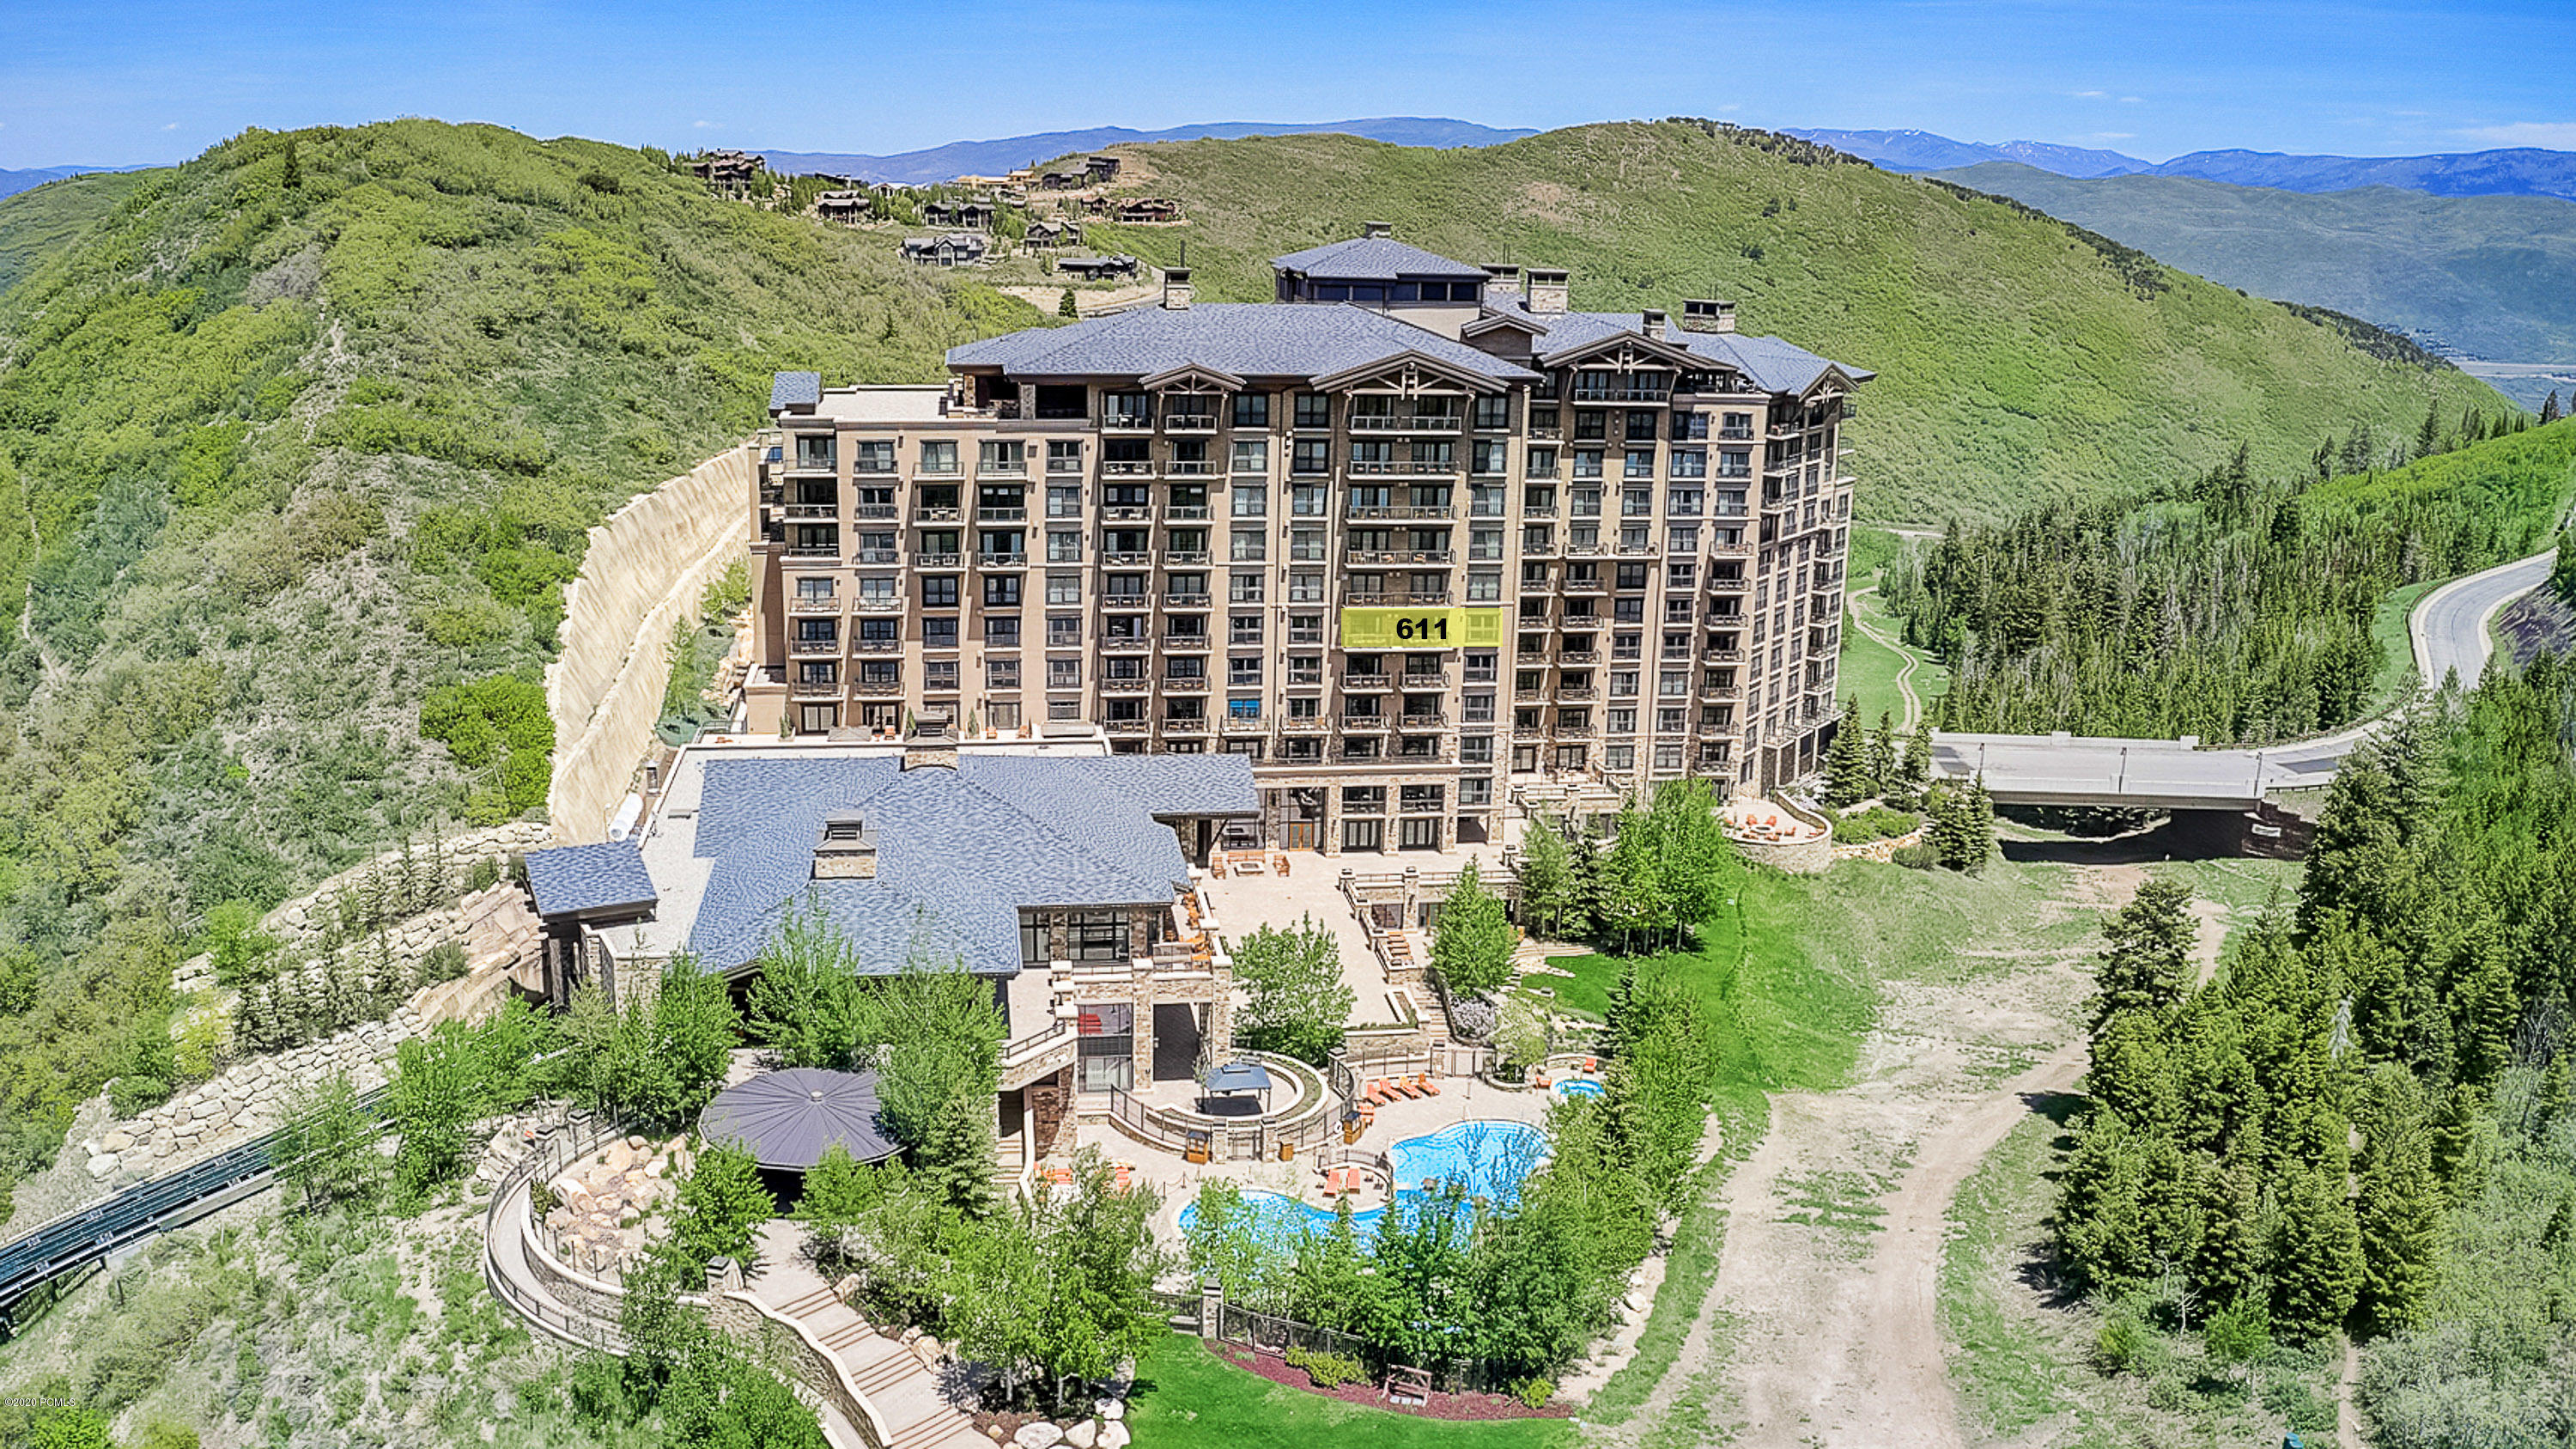 2300 Deer Valley Drive, Park City, Utah 84060, 3 Bedrooms Bedrooms, ,4 BathroomsBathrooms,Condominium,For Sale,Deer Valley,20190109112430415765000000